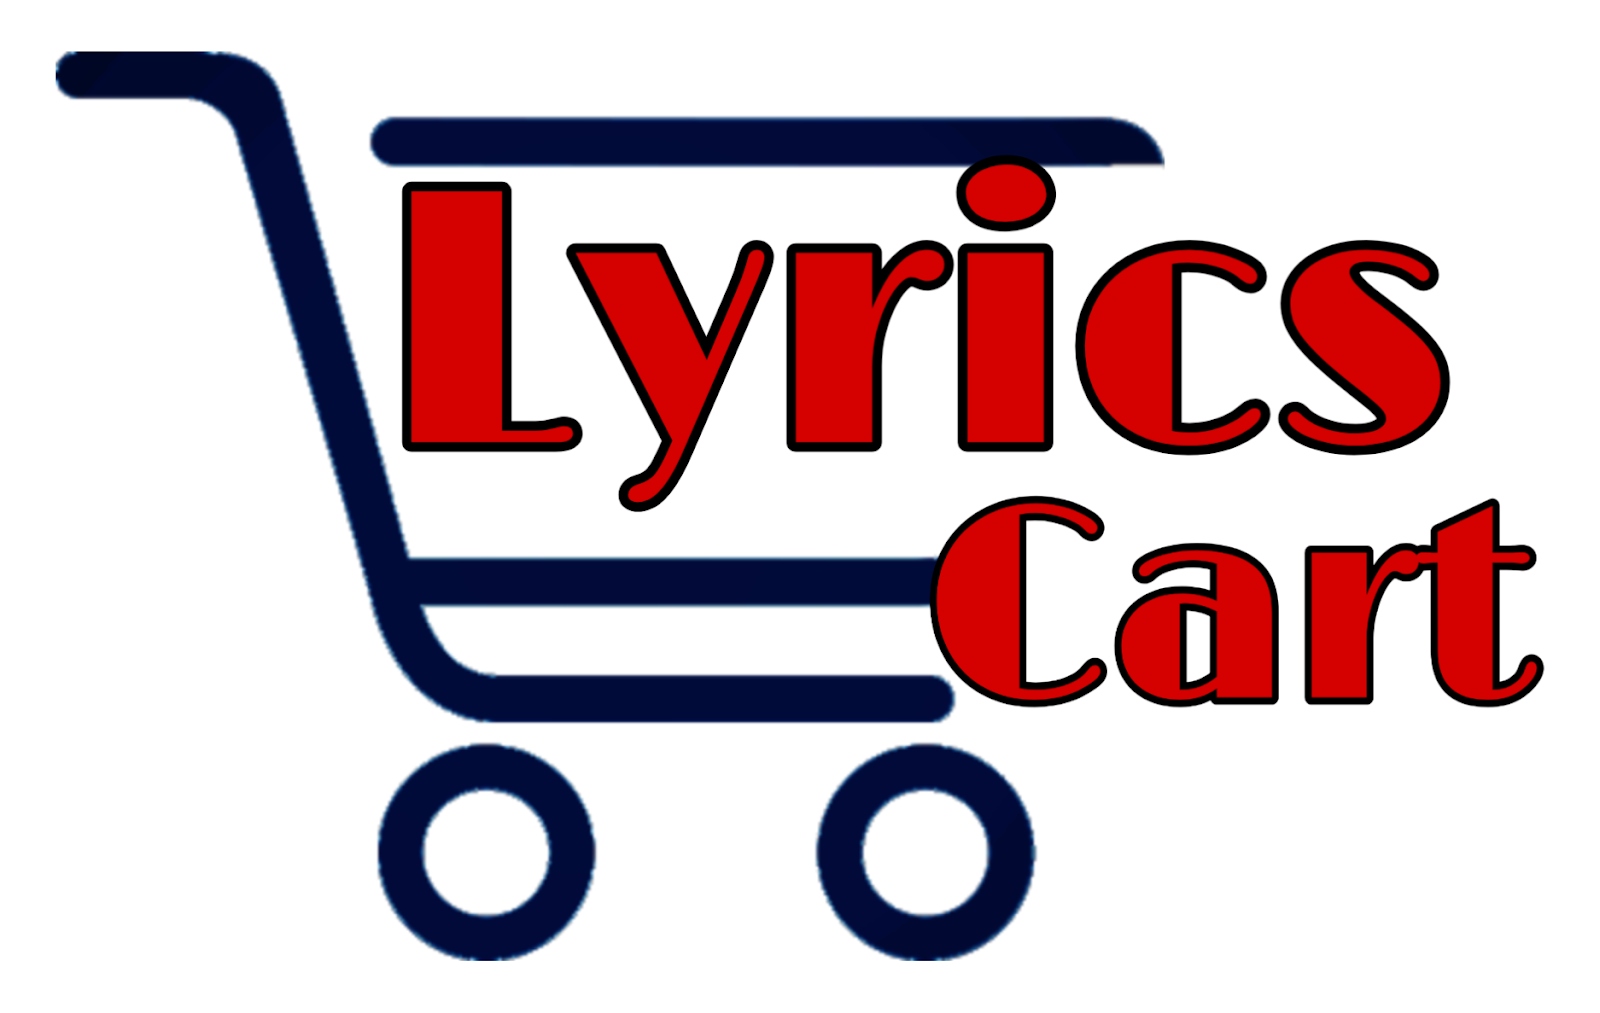 Lyrics Cart